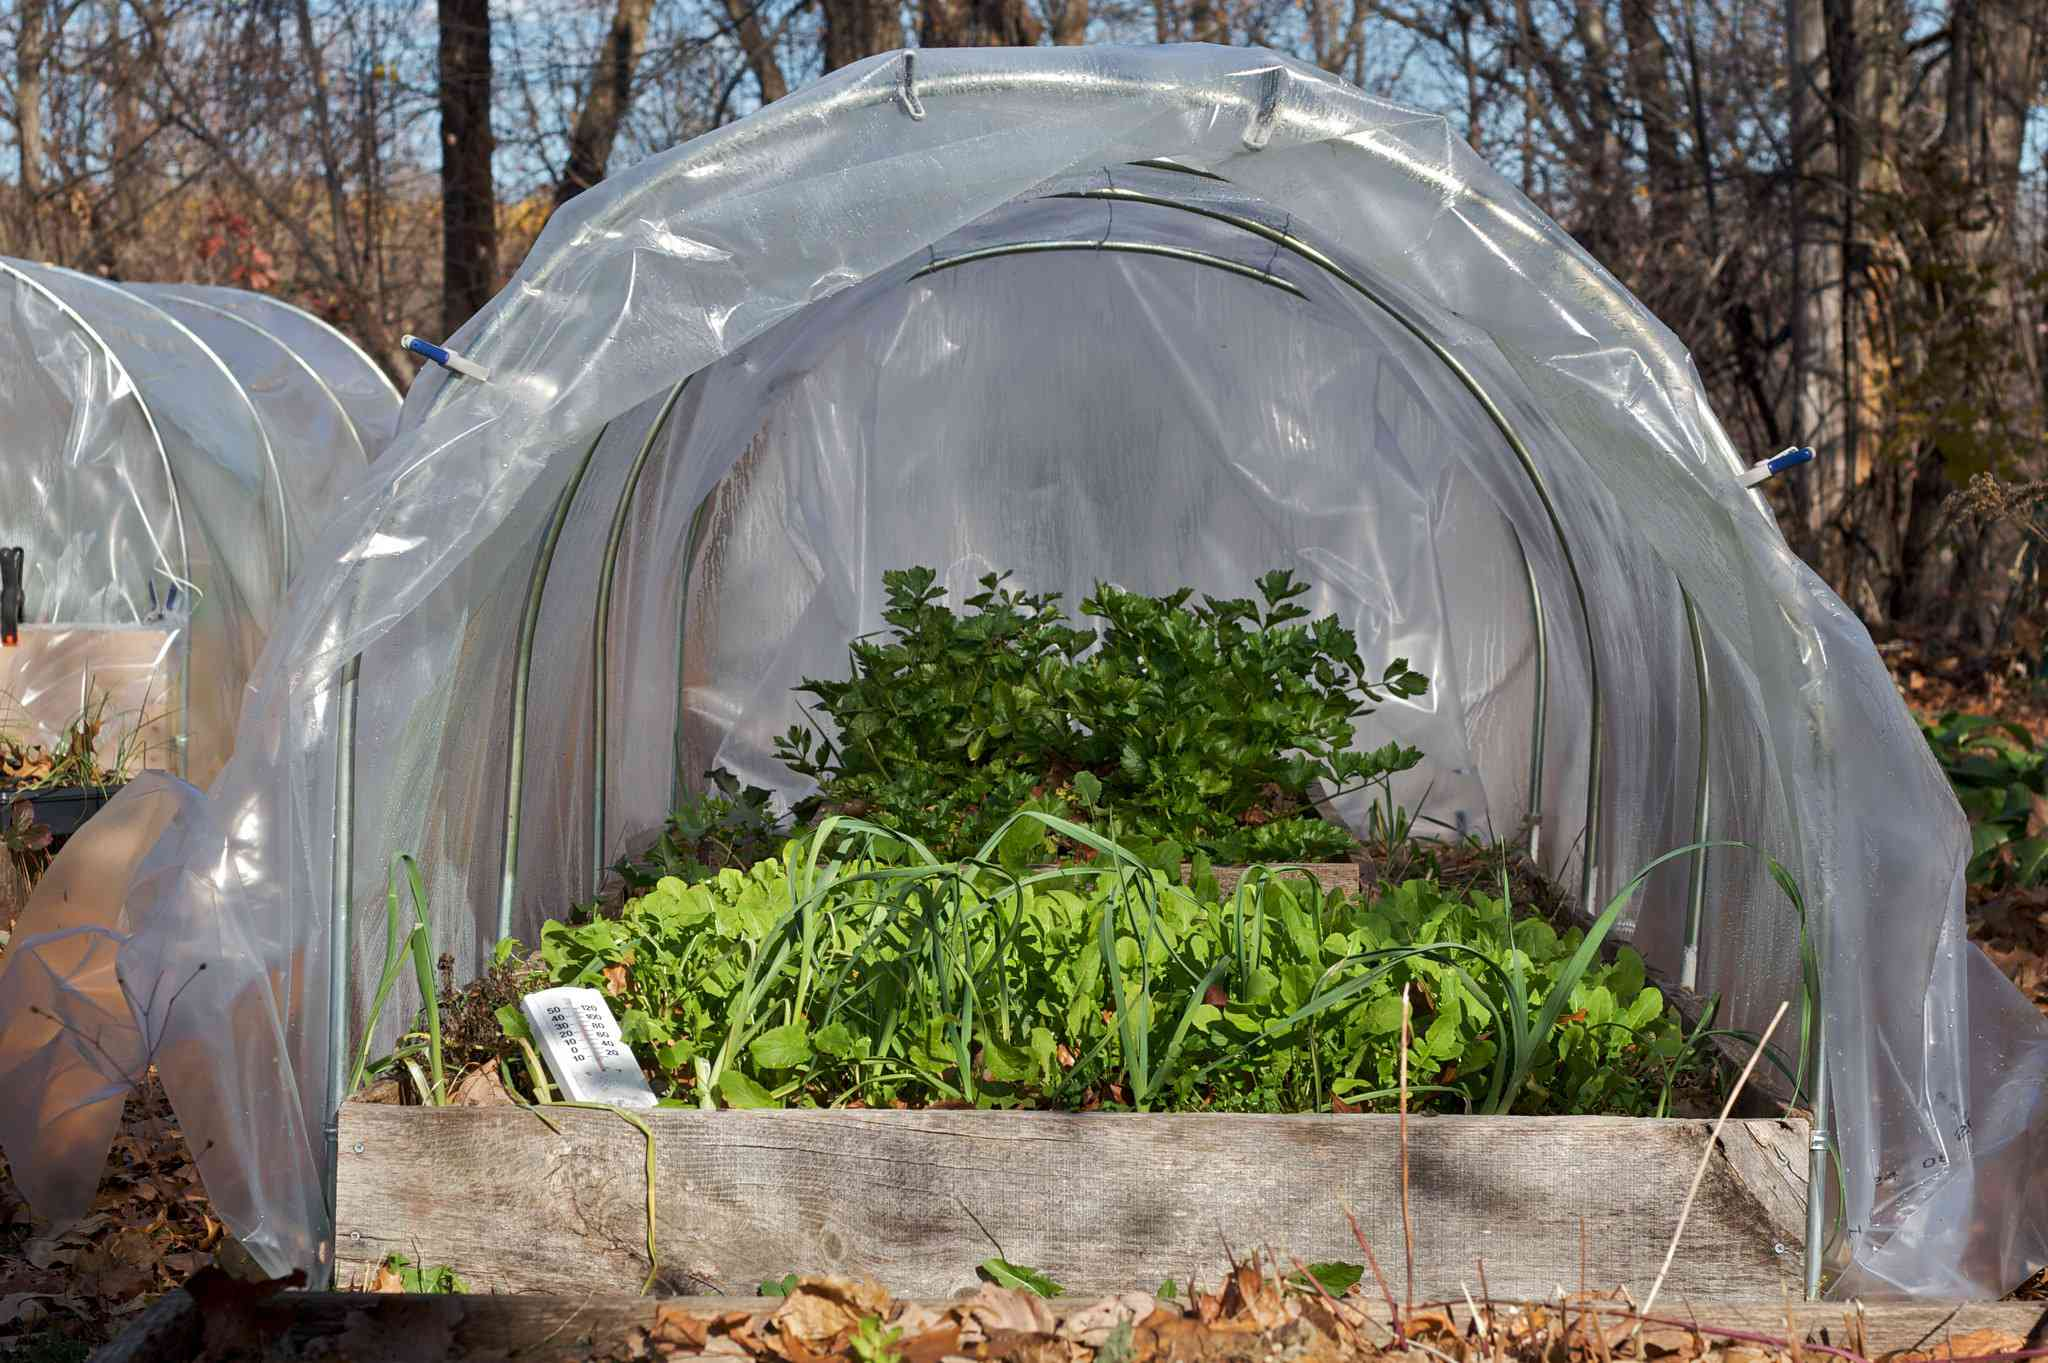 Spinach growing in a low tunnel greenhouse in the winter.